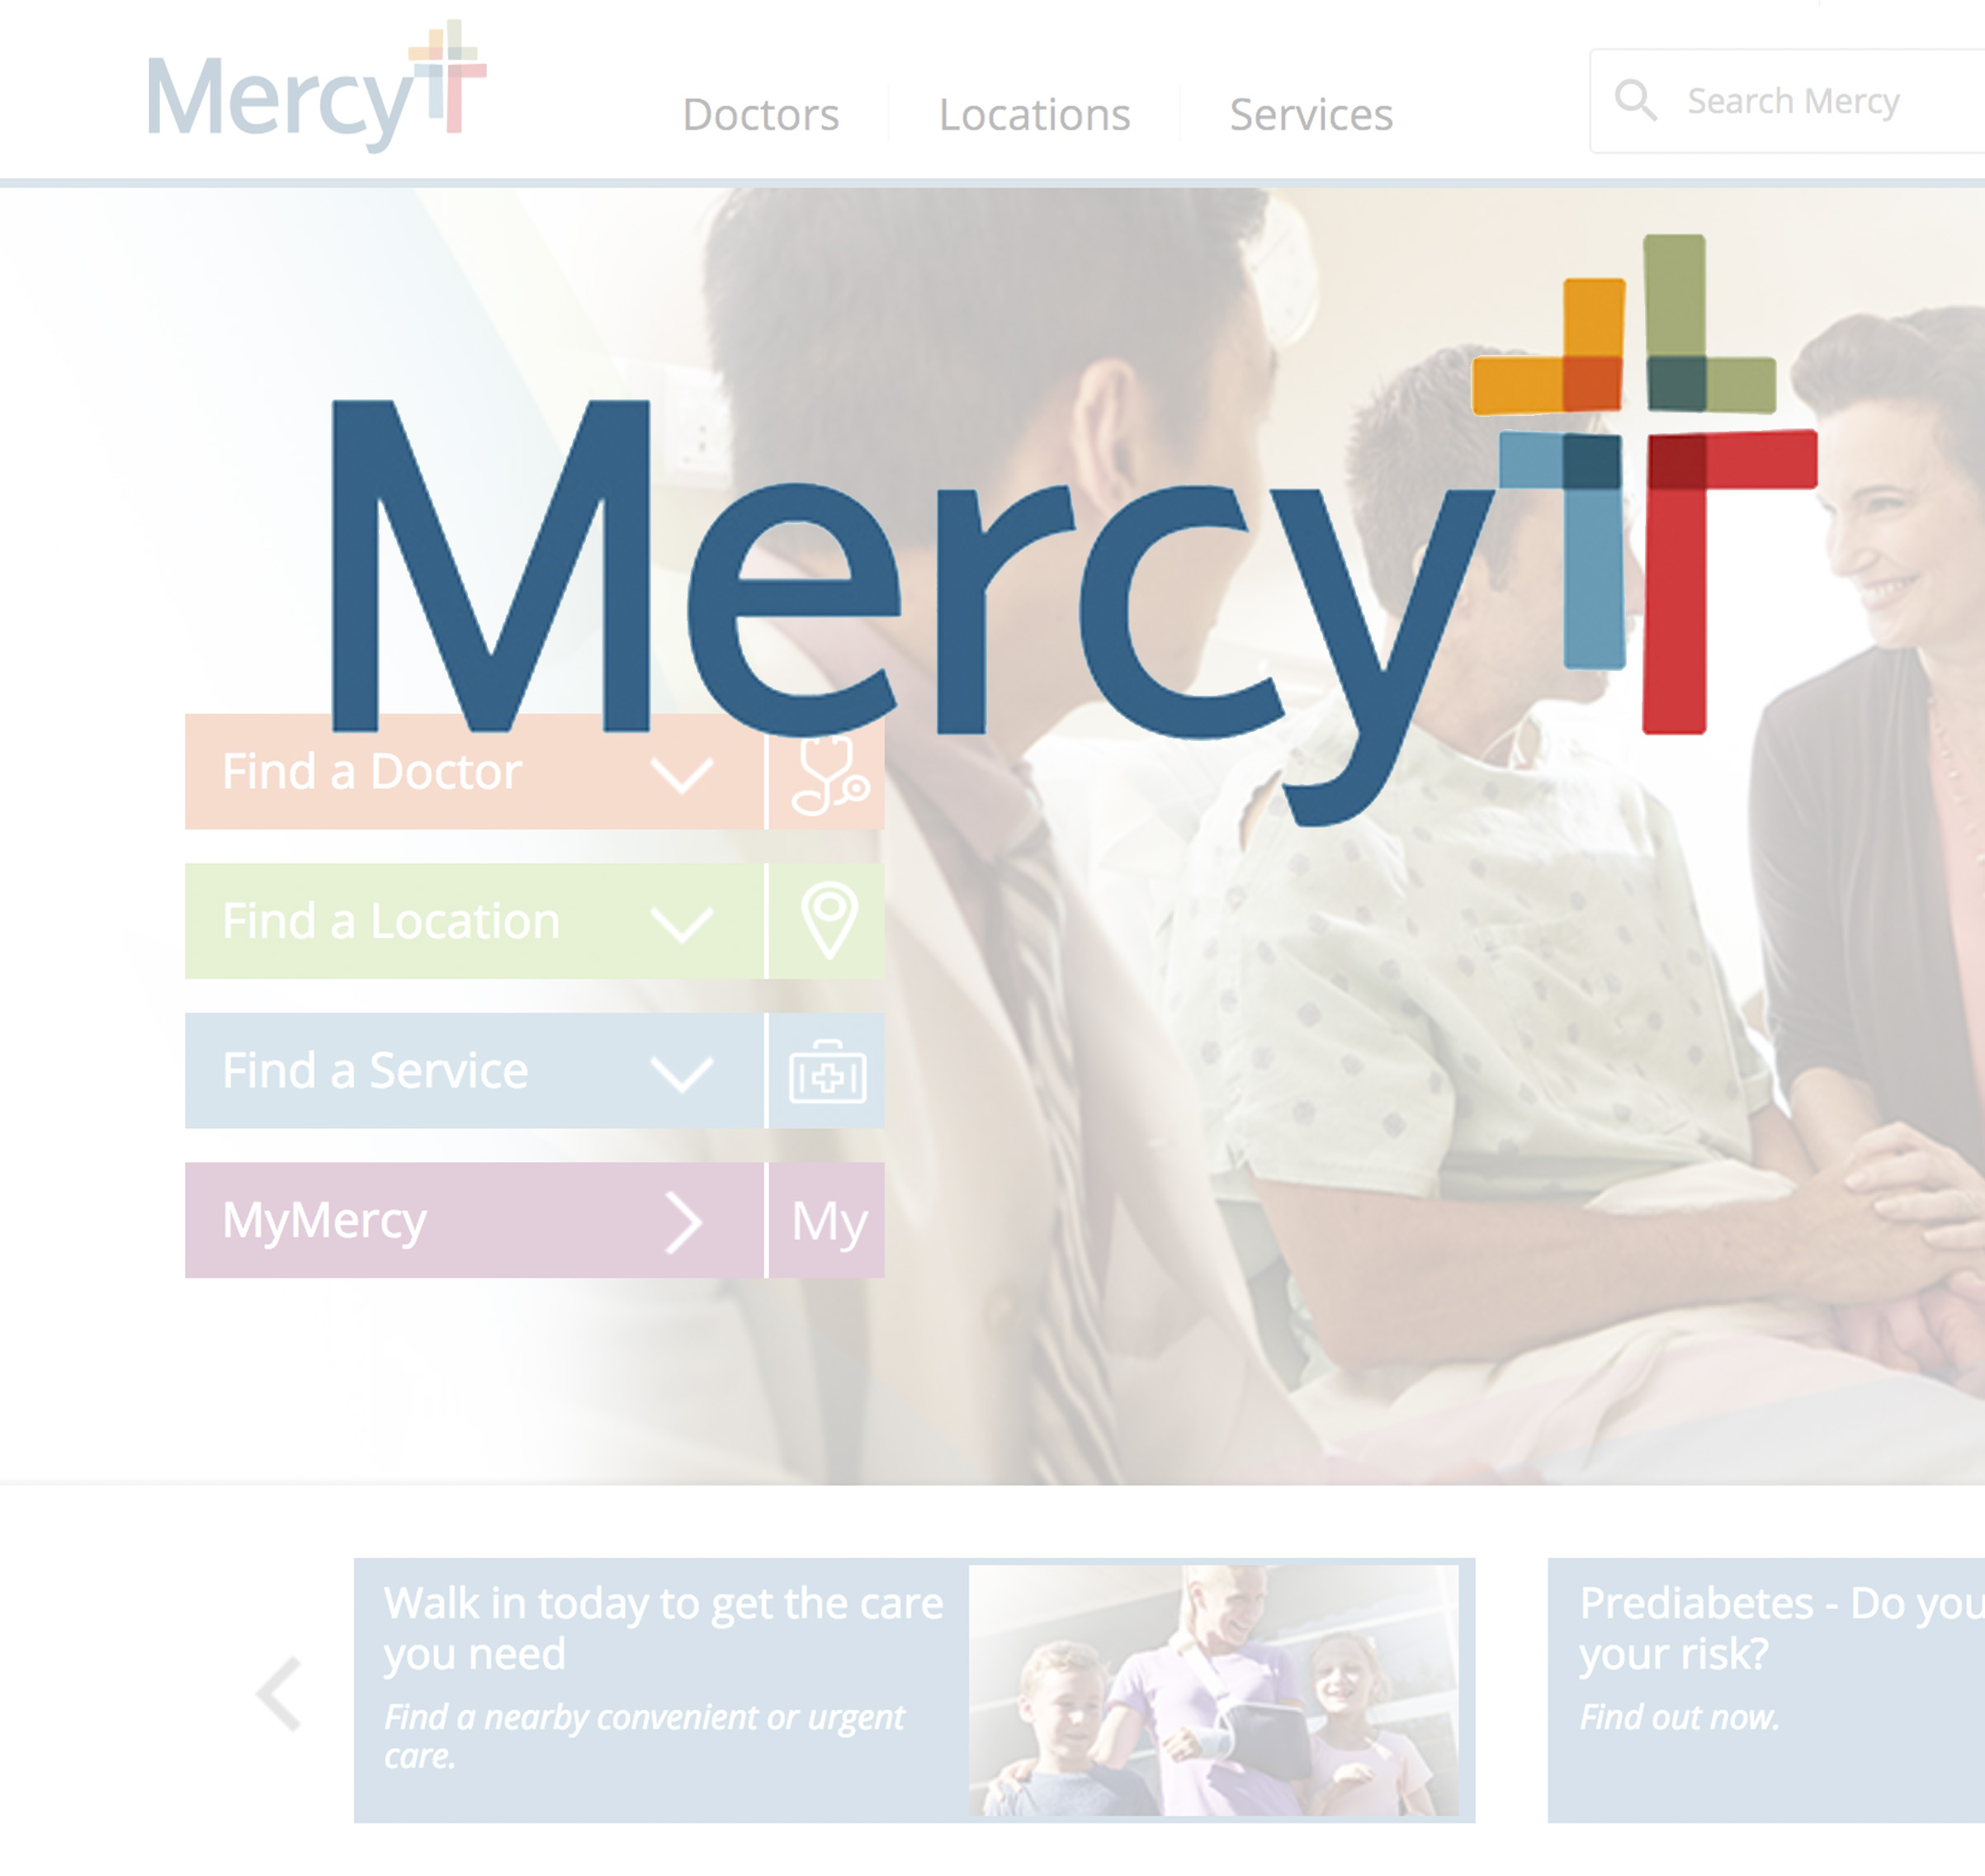 Mercy Health: The Digital Transformation of a Leading Health System